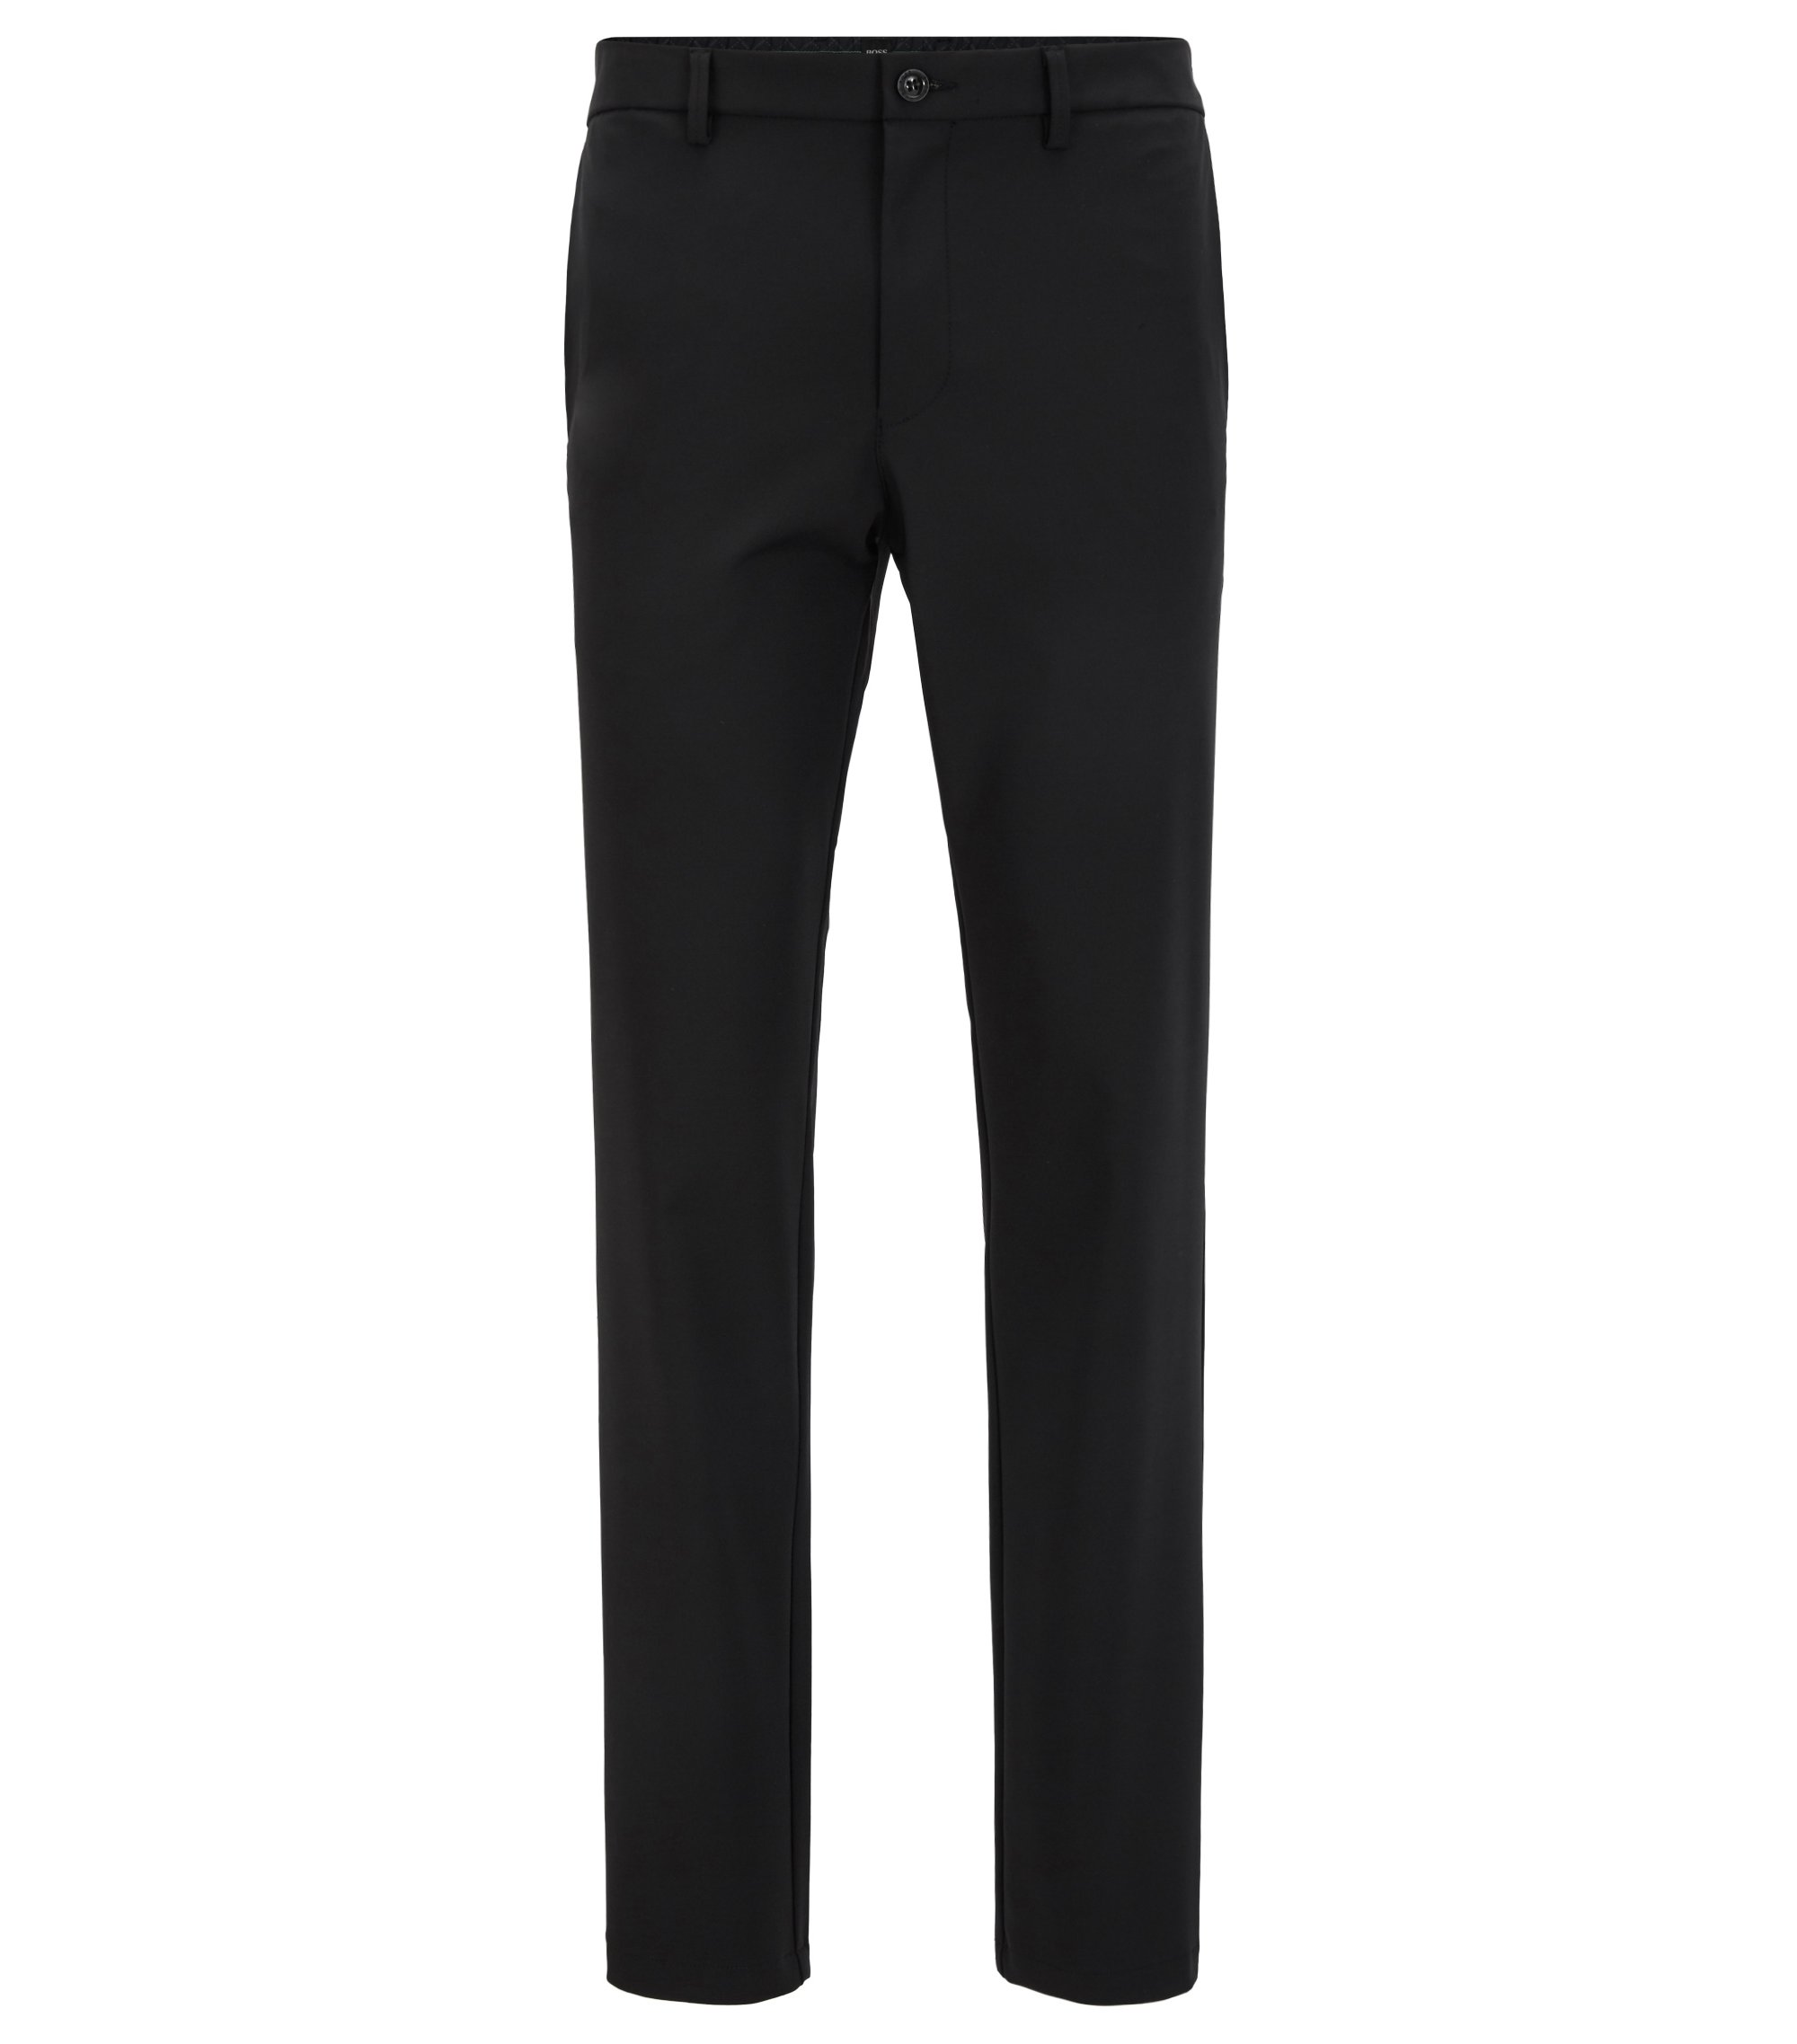 Anti-Wrinkle Pant, Slim Fit | Lavish, Black